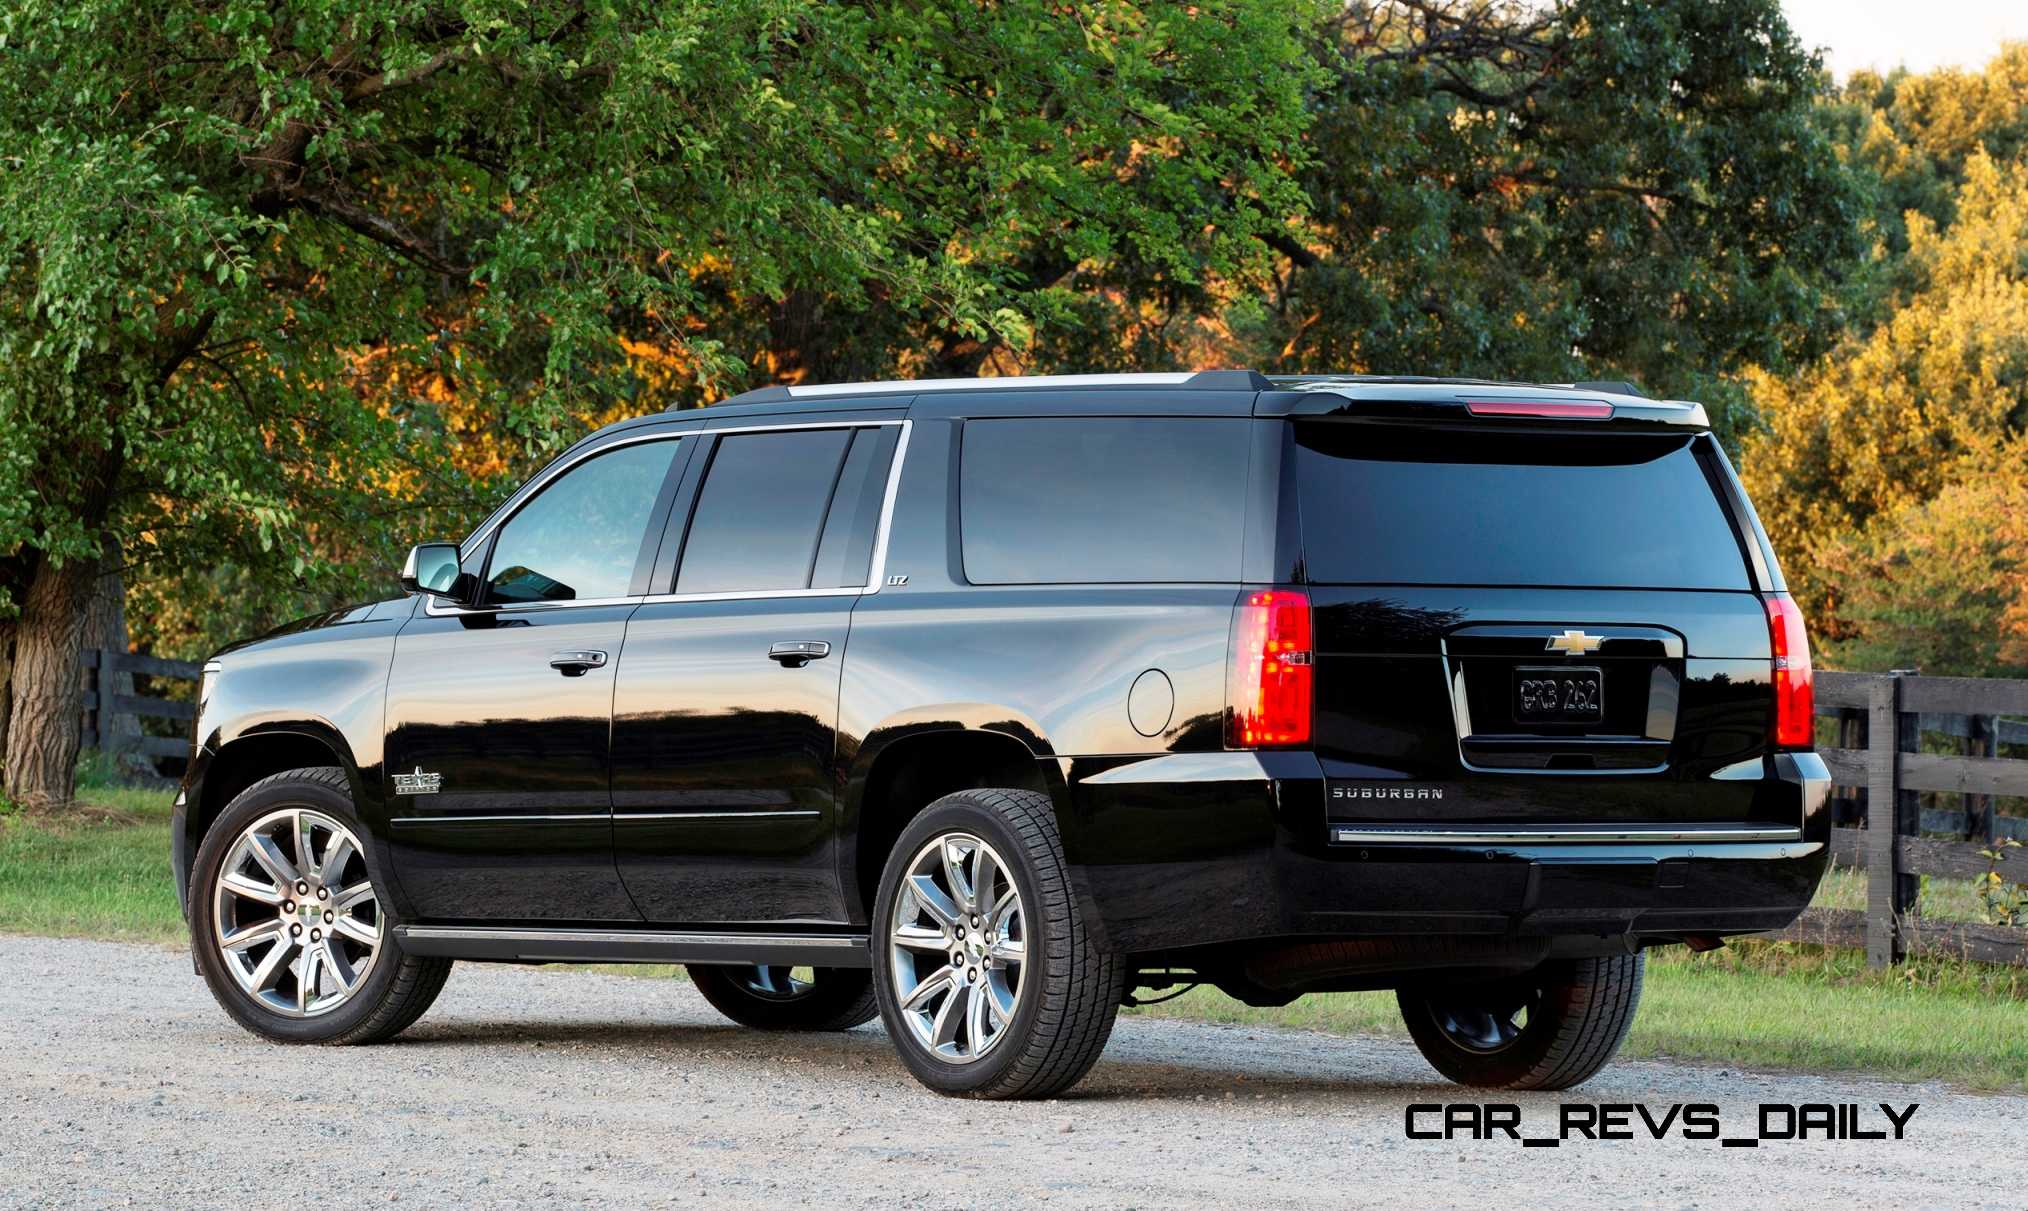 Chevy Introduces Suburban and Tahoe Texas Editions to Complement Silverado UT Special